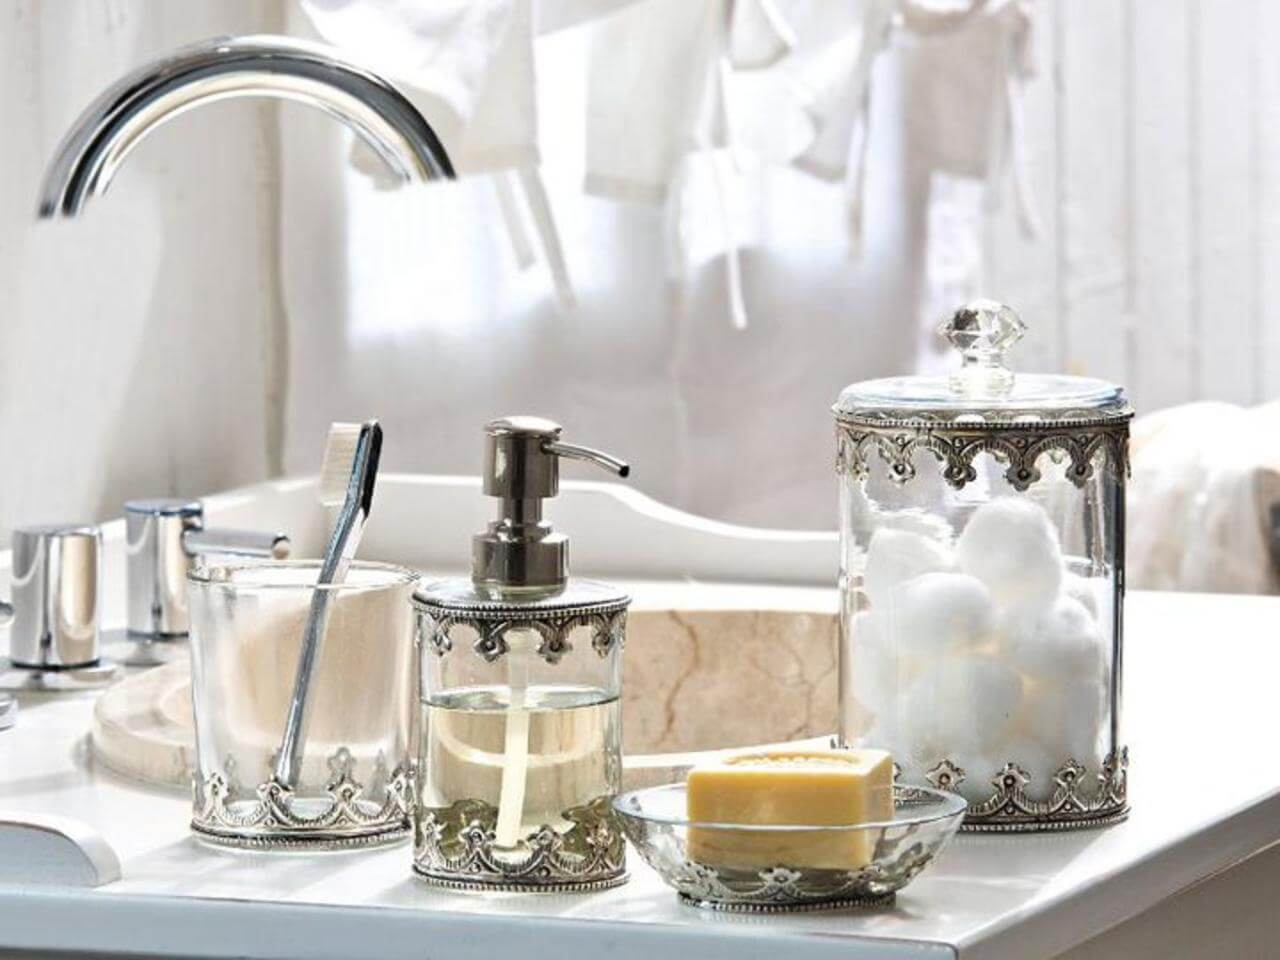 Vintage inspired metal and glass bathroom accessories